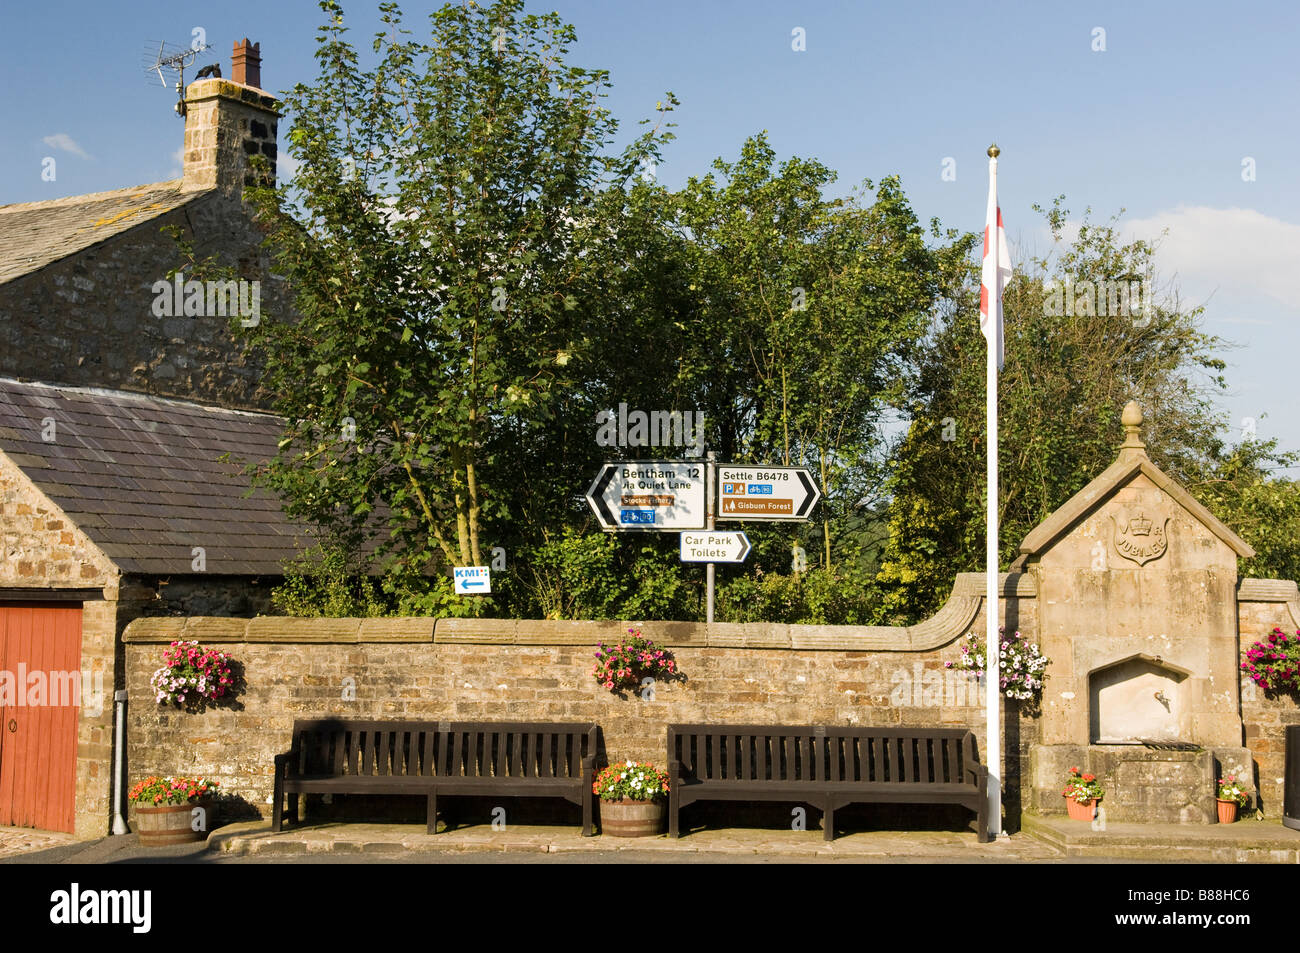 Public seating in the Village of Slaidburn in the Forest of Bowland Lancashire North West England - Stock Image